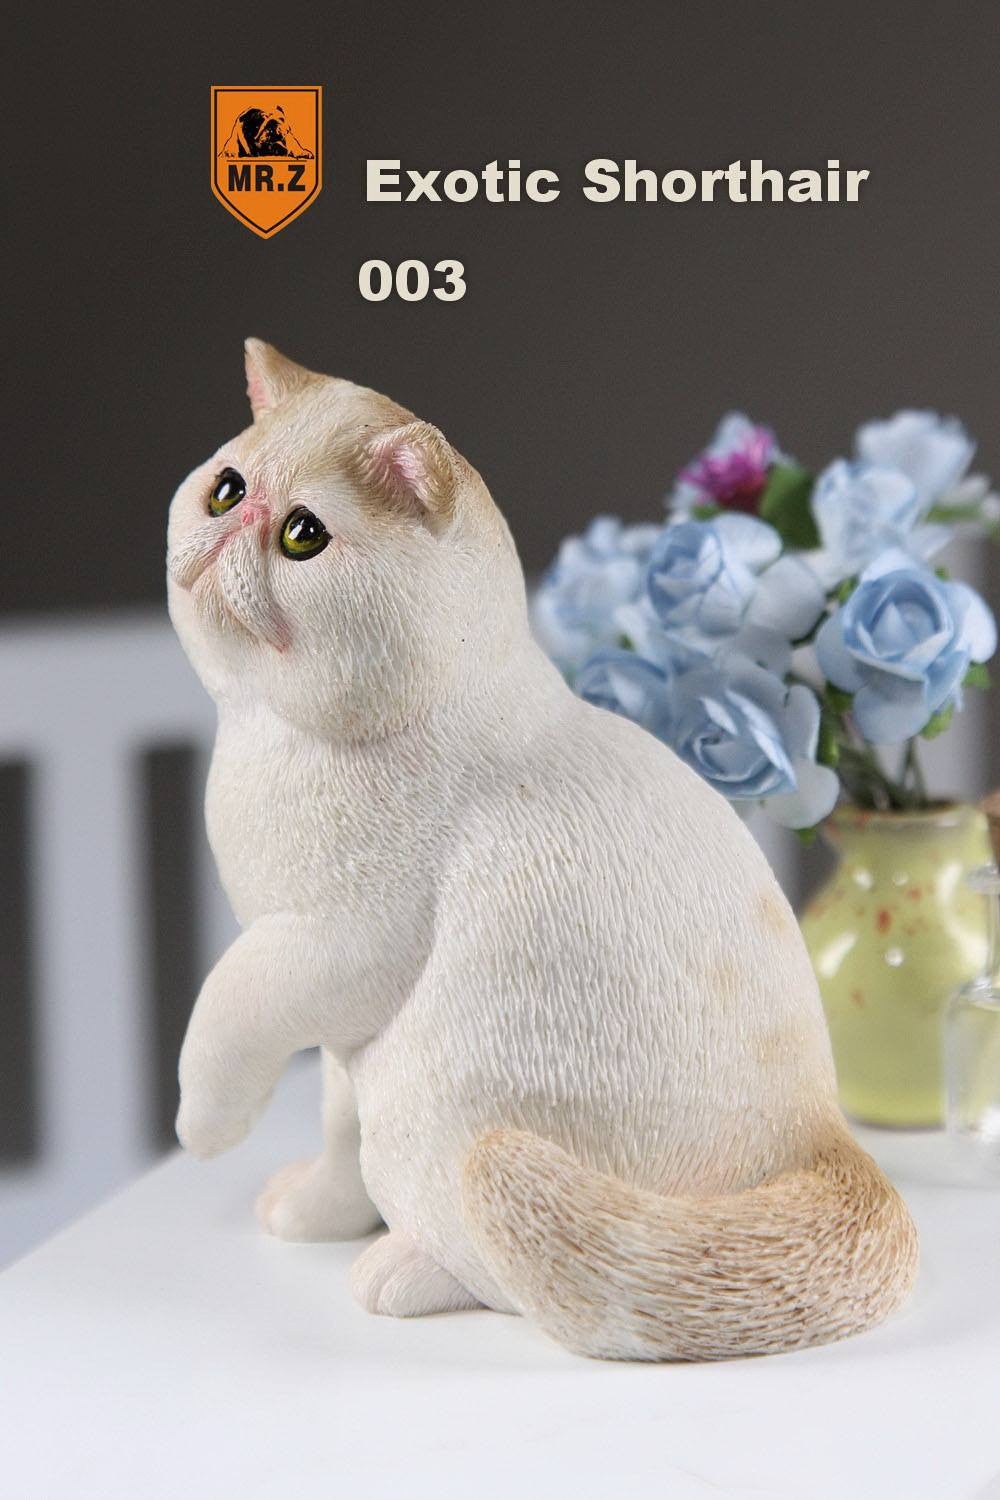 MR.Z - Real Animal Series No.8 - 1/6th Scale Exotic Shorthair Cat (Garfield) 001-005 - Marvelous Toys - 22